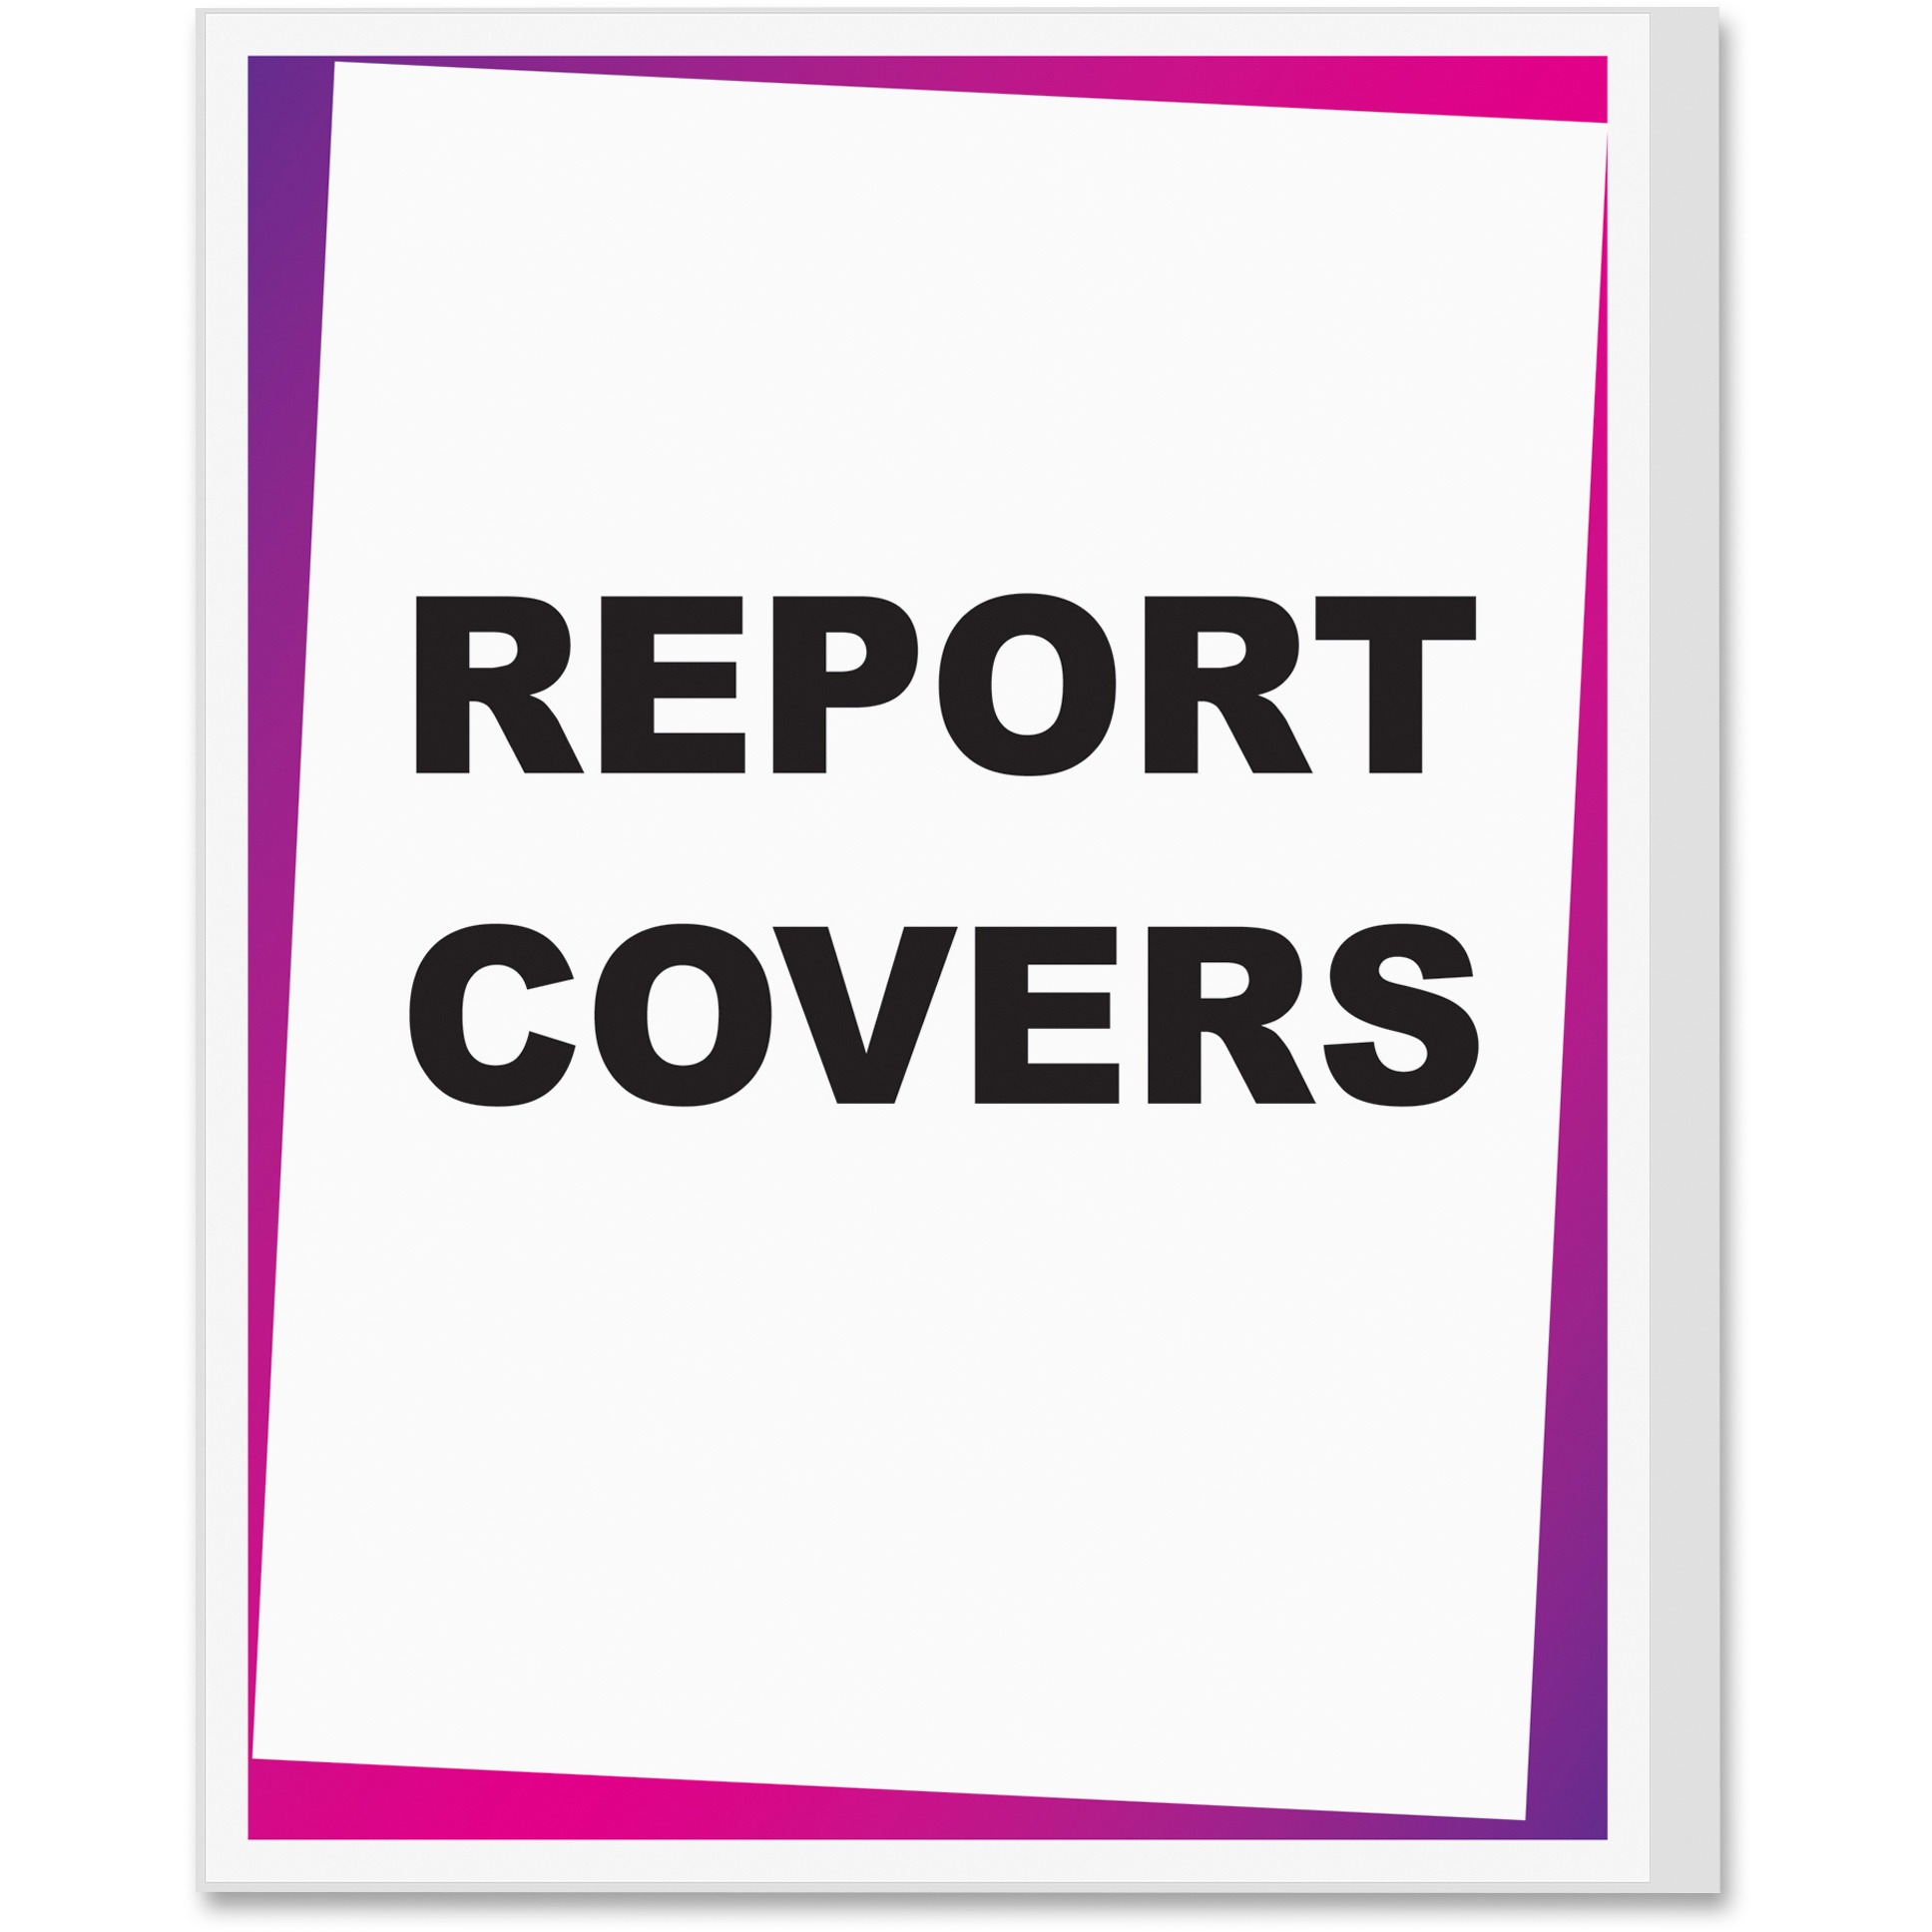 C-Line Report Covers, Economy Vinyl, Clear, 8 1 2 x 11, 100 BX by C-LINE PRODUCTS, INC